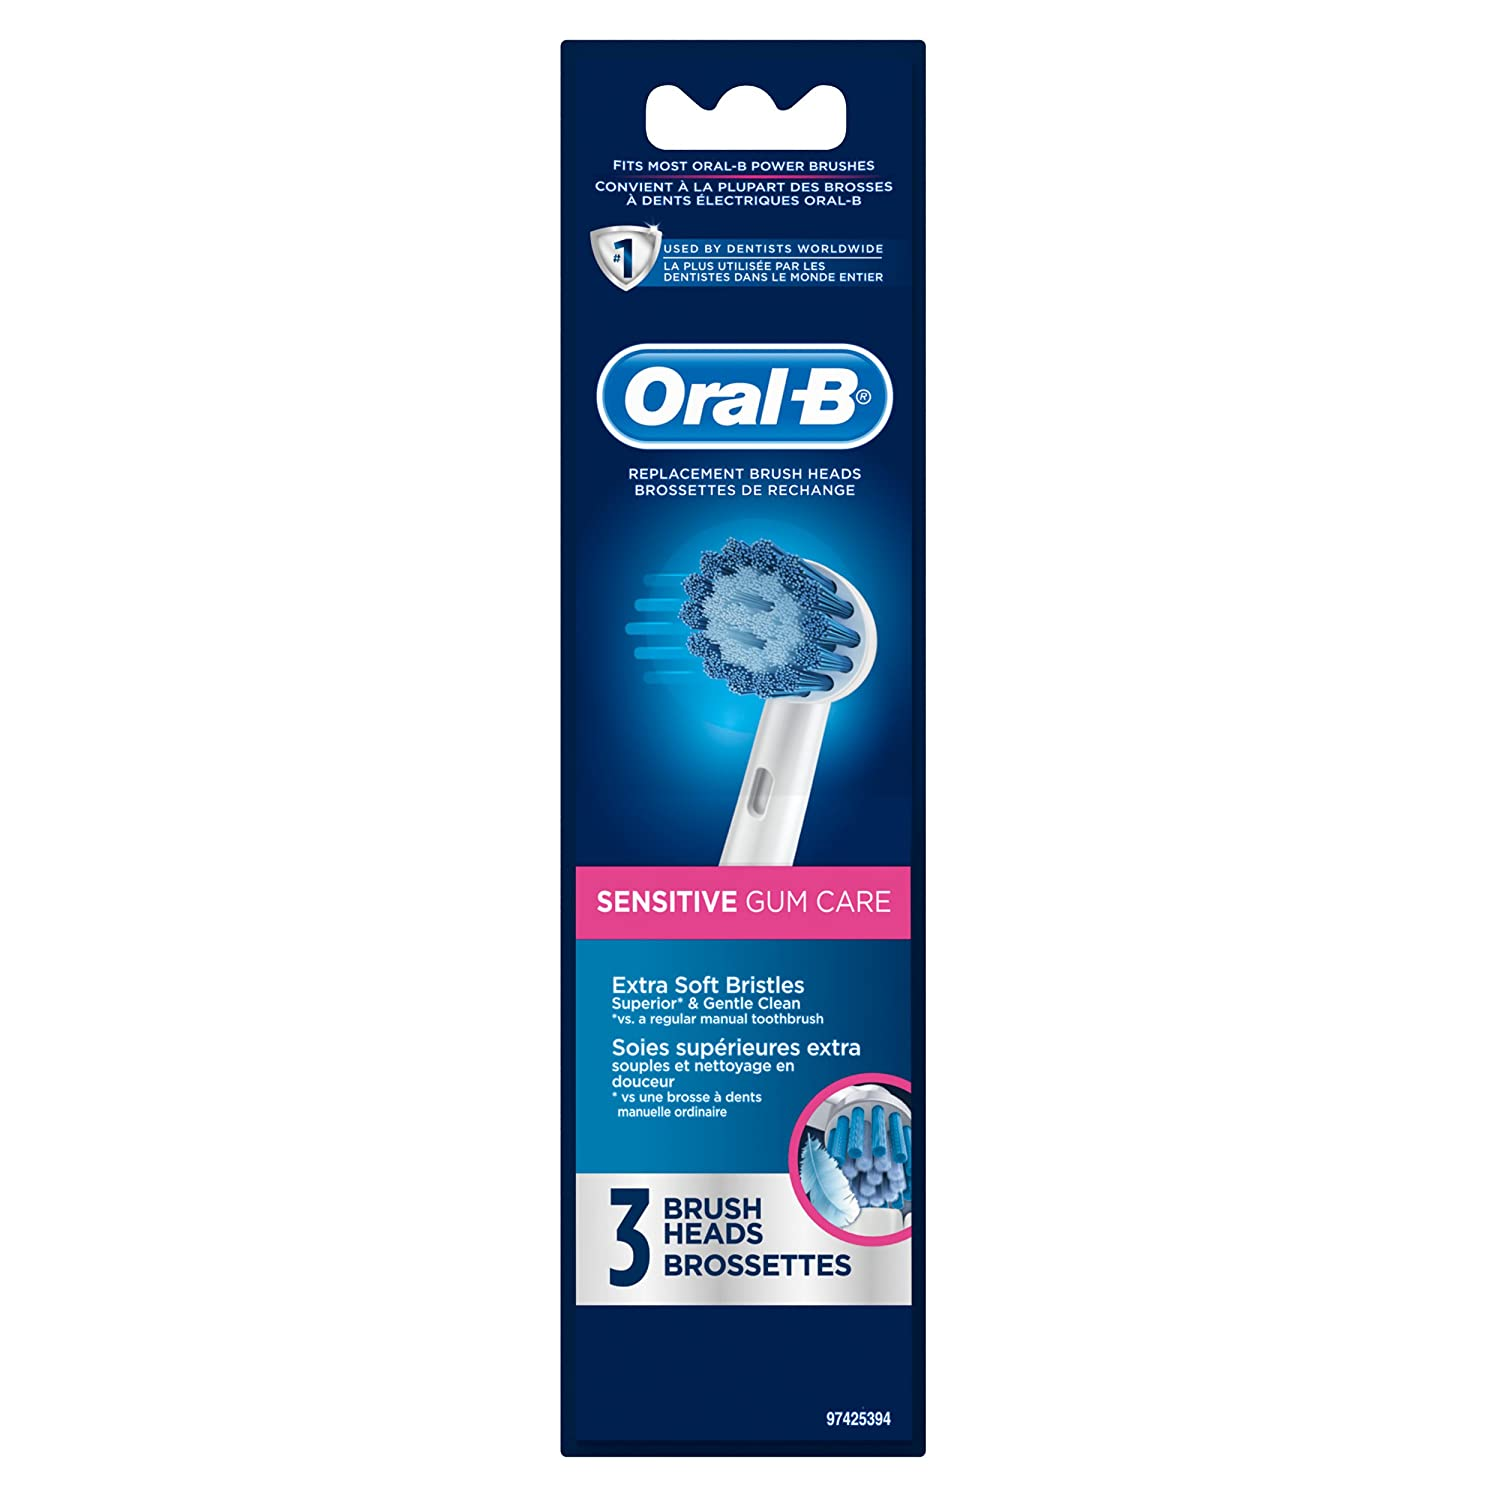 Amazon.com: Oral B Sensitive Gum Care Electric Toothbrush Replacement Brush  Heads, 3 Count: Beauty